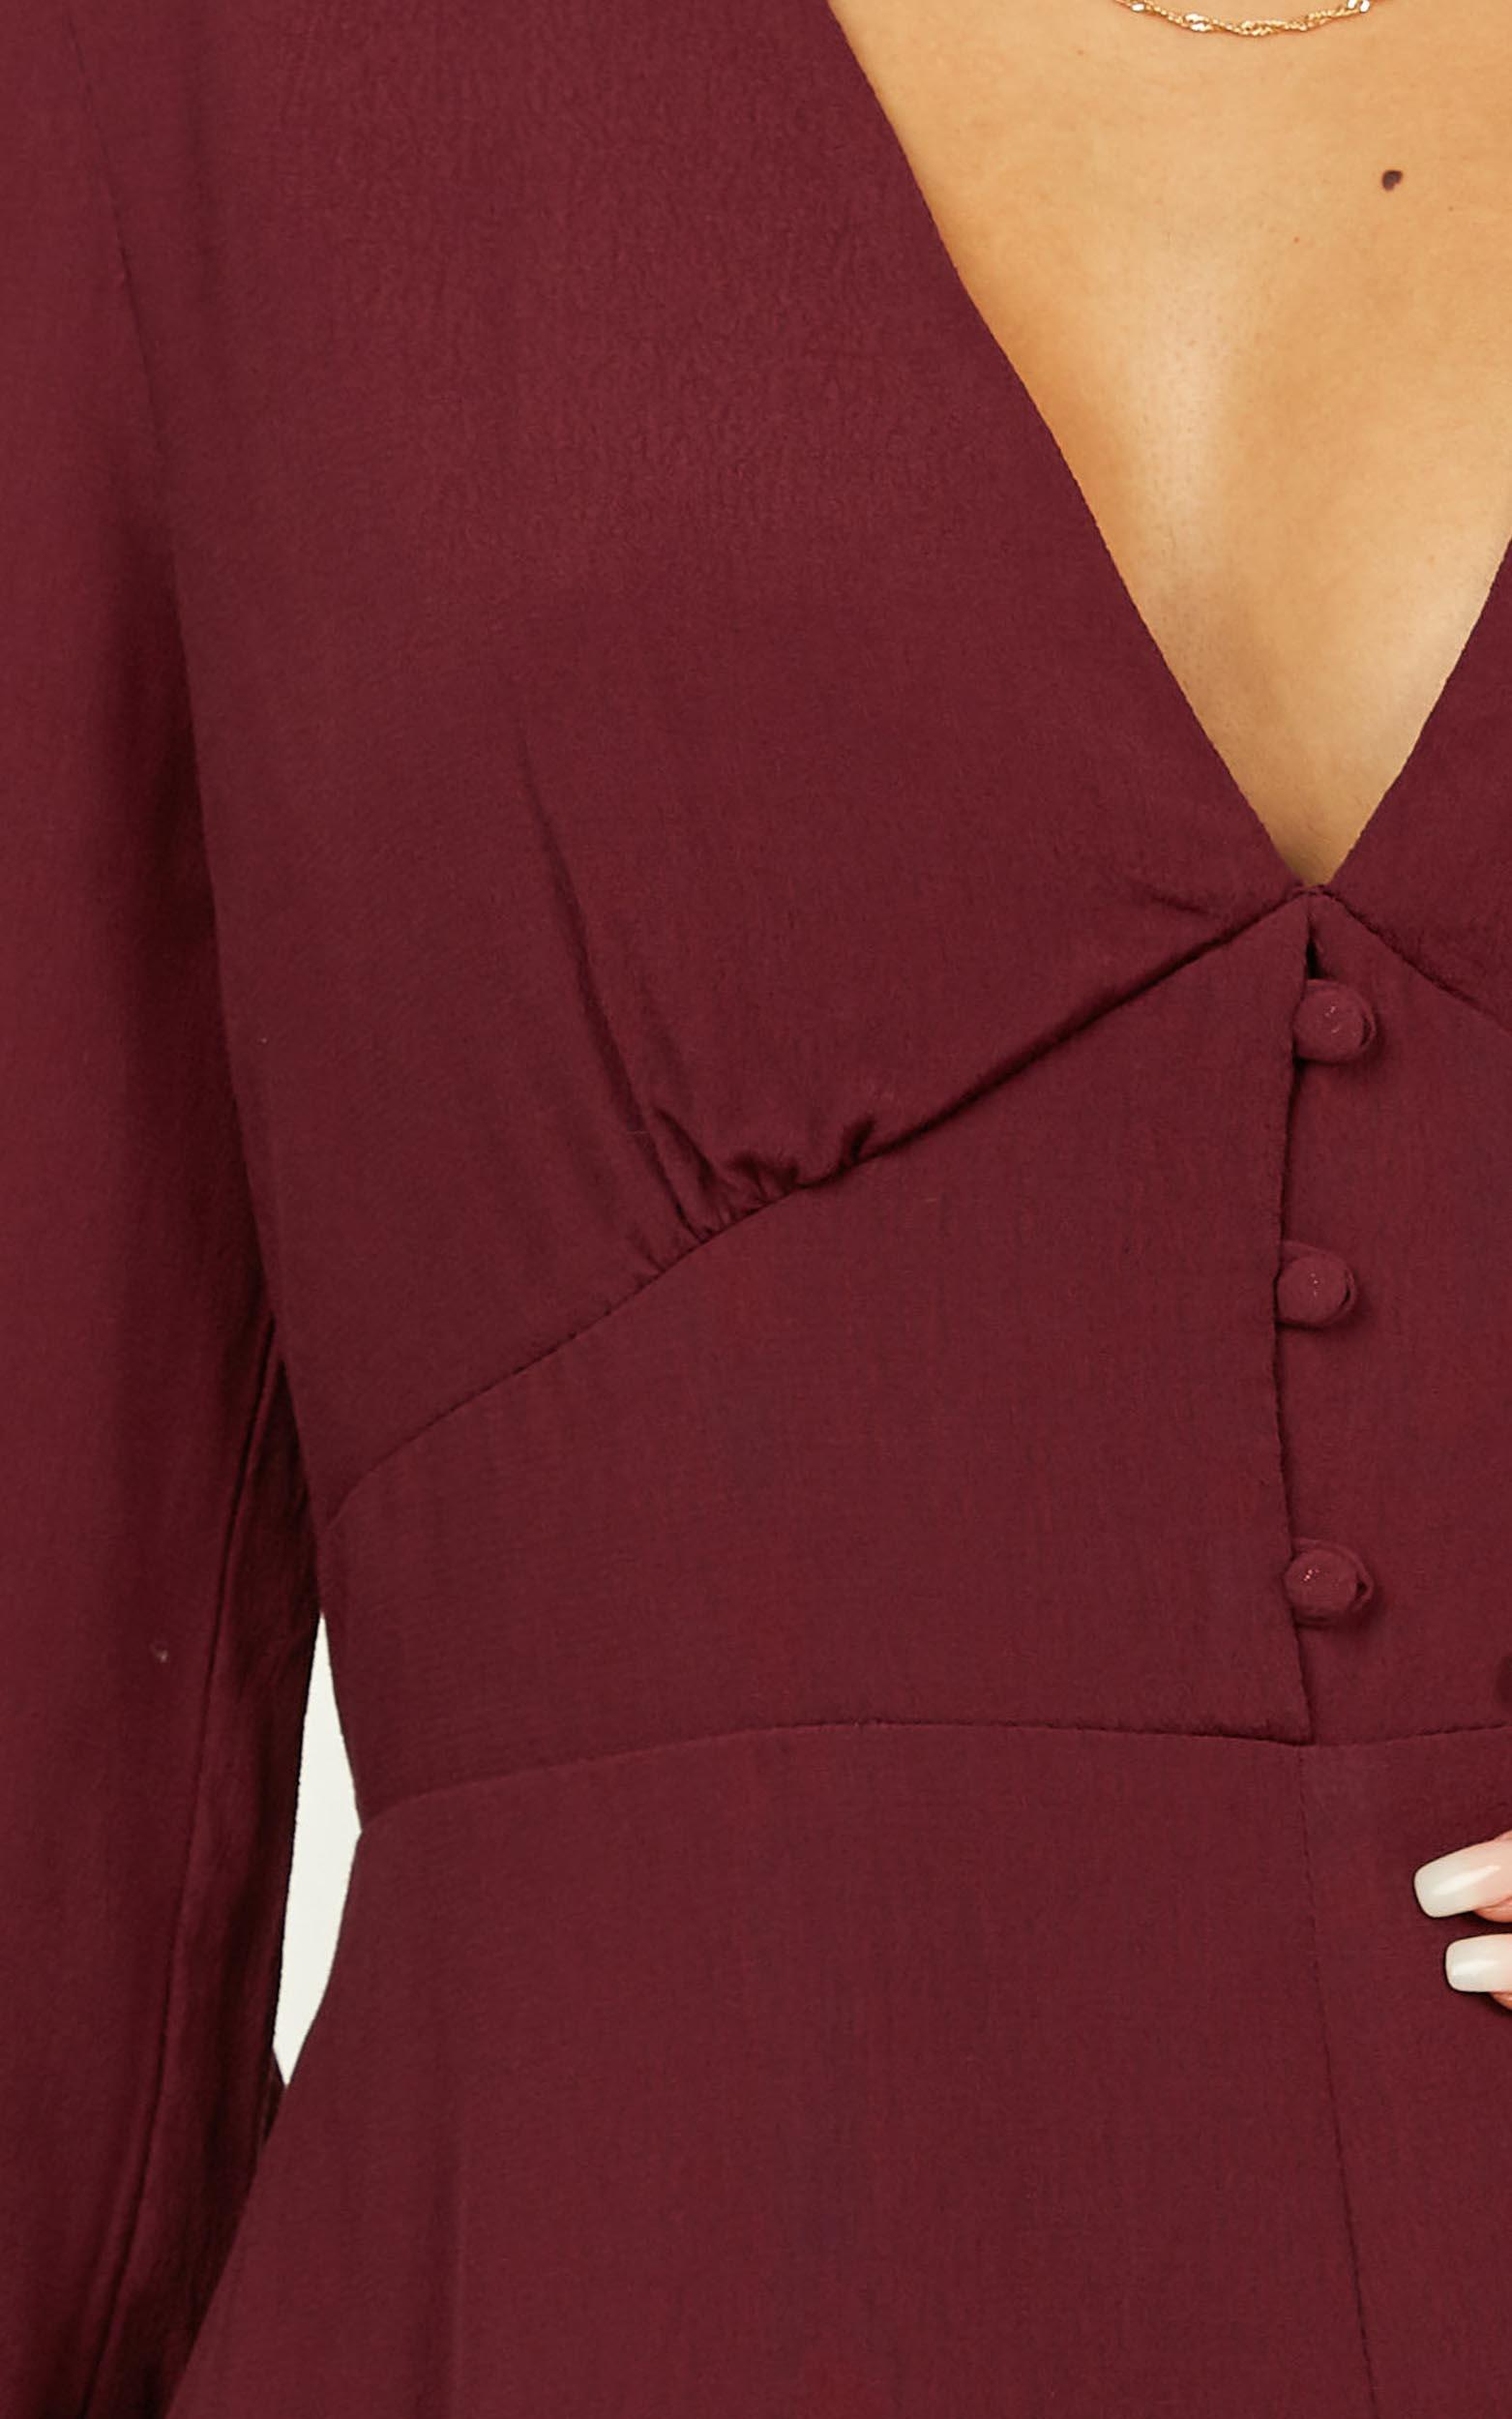 Stuck With It Playsuit in aubergine - 20 (XXXXL), Purple, hi-res image number null